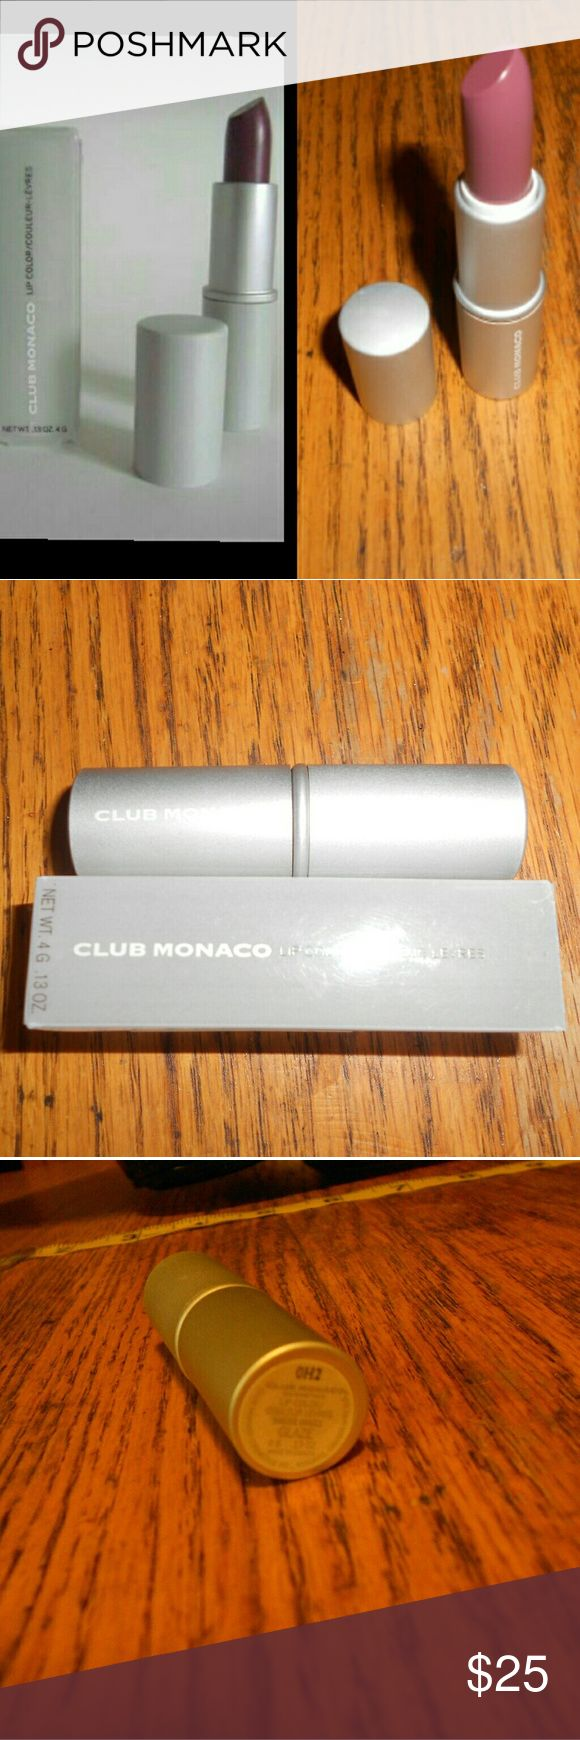 """Famous club Monaco lip stick in """"glaze"""" LAST TUBE Brand new tube of club Monaco lip stick in glaze color Made famous by Monica Lewinsky in the 90's The box is a bit damaged but not too bad This lip stick is easily 45+ on eBay and everywhere else Feel free to ask questions! Club Monaco Makeup Lipstick"""